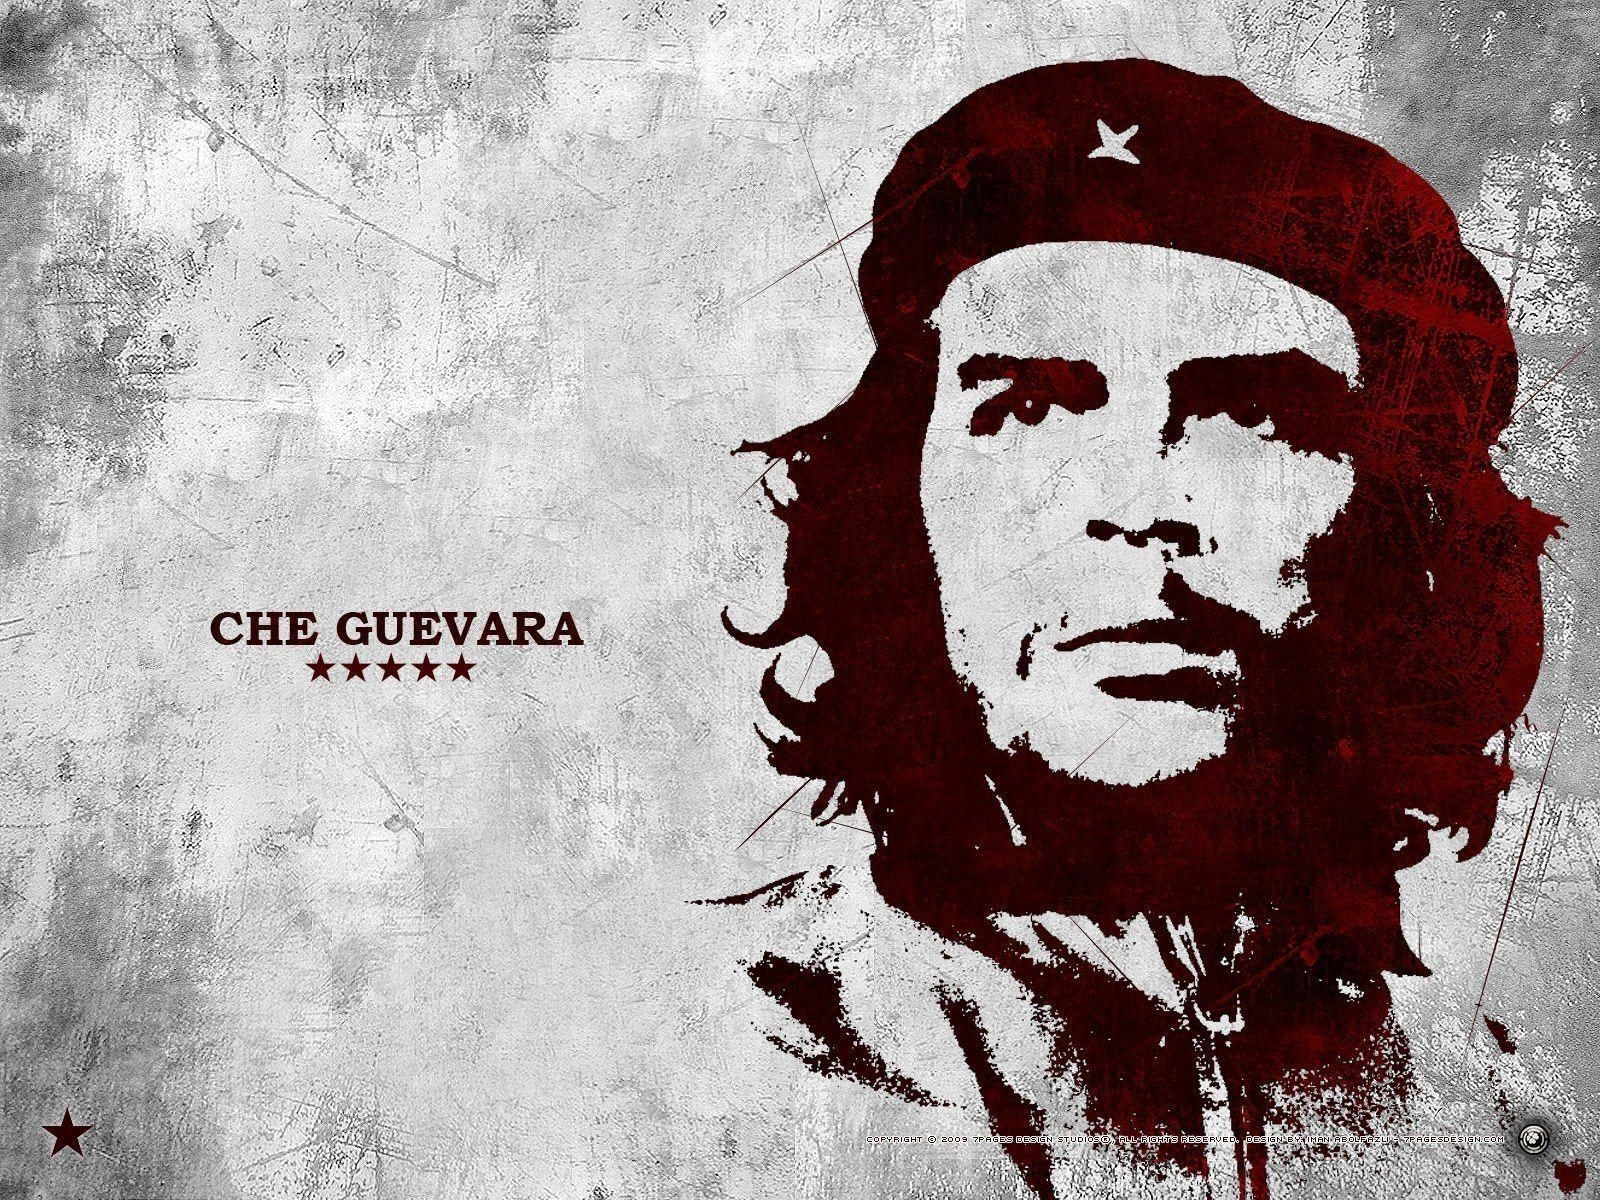 free che guevara wallpapers - wallpaper cave